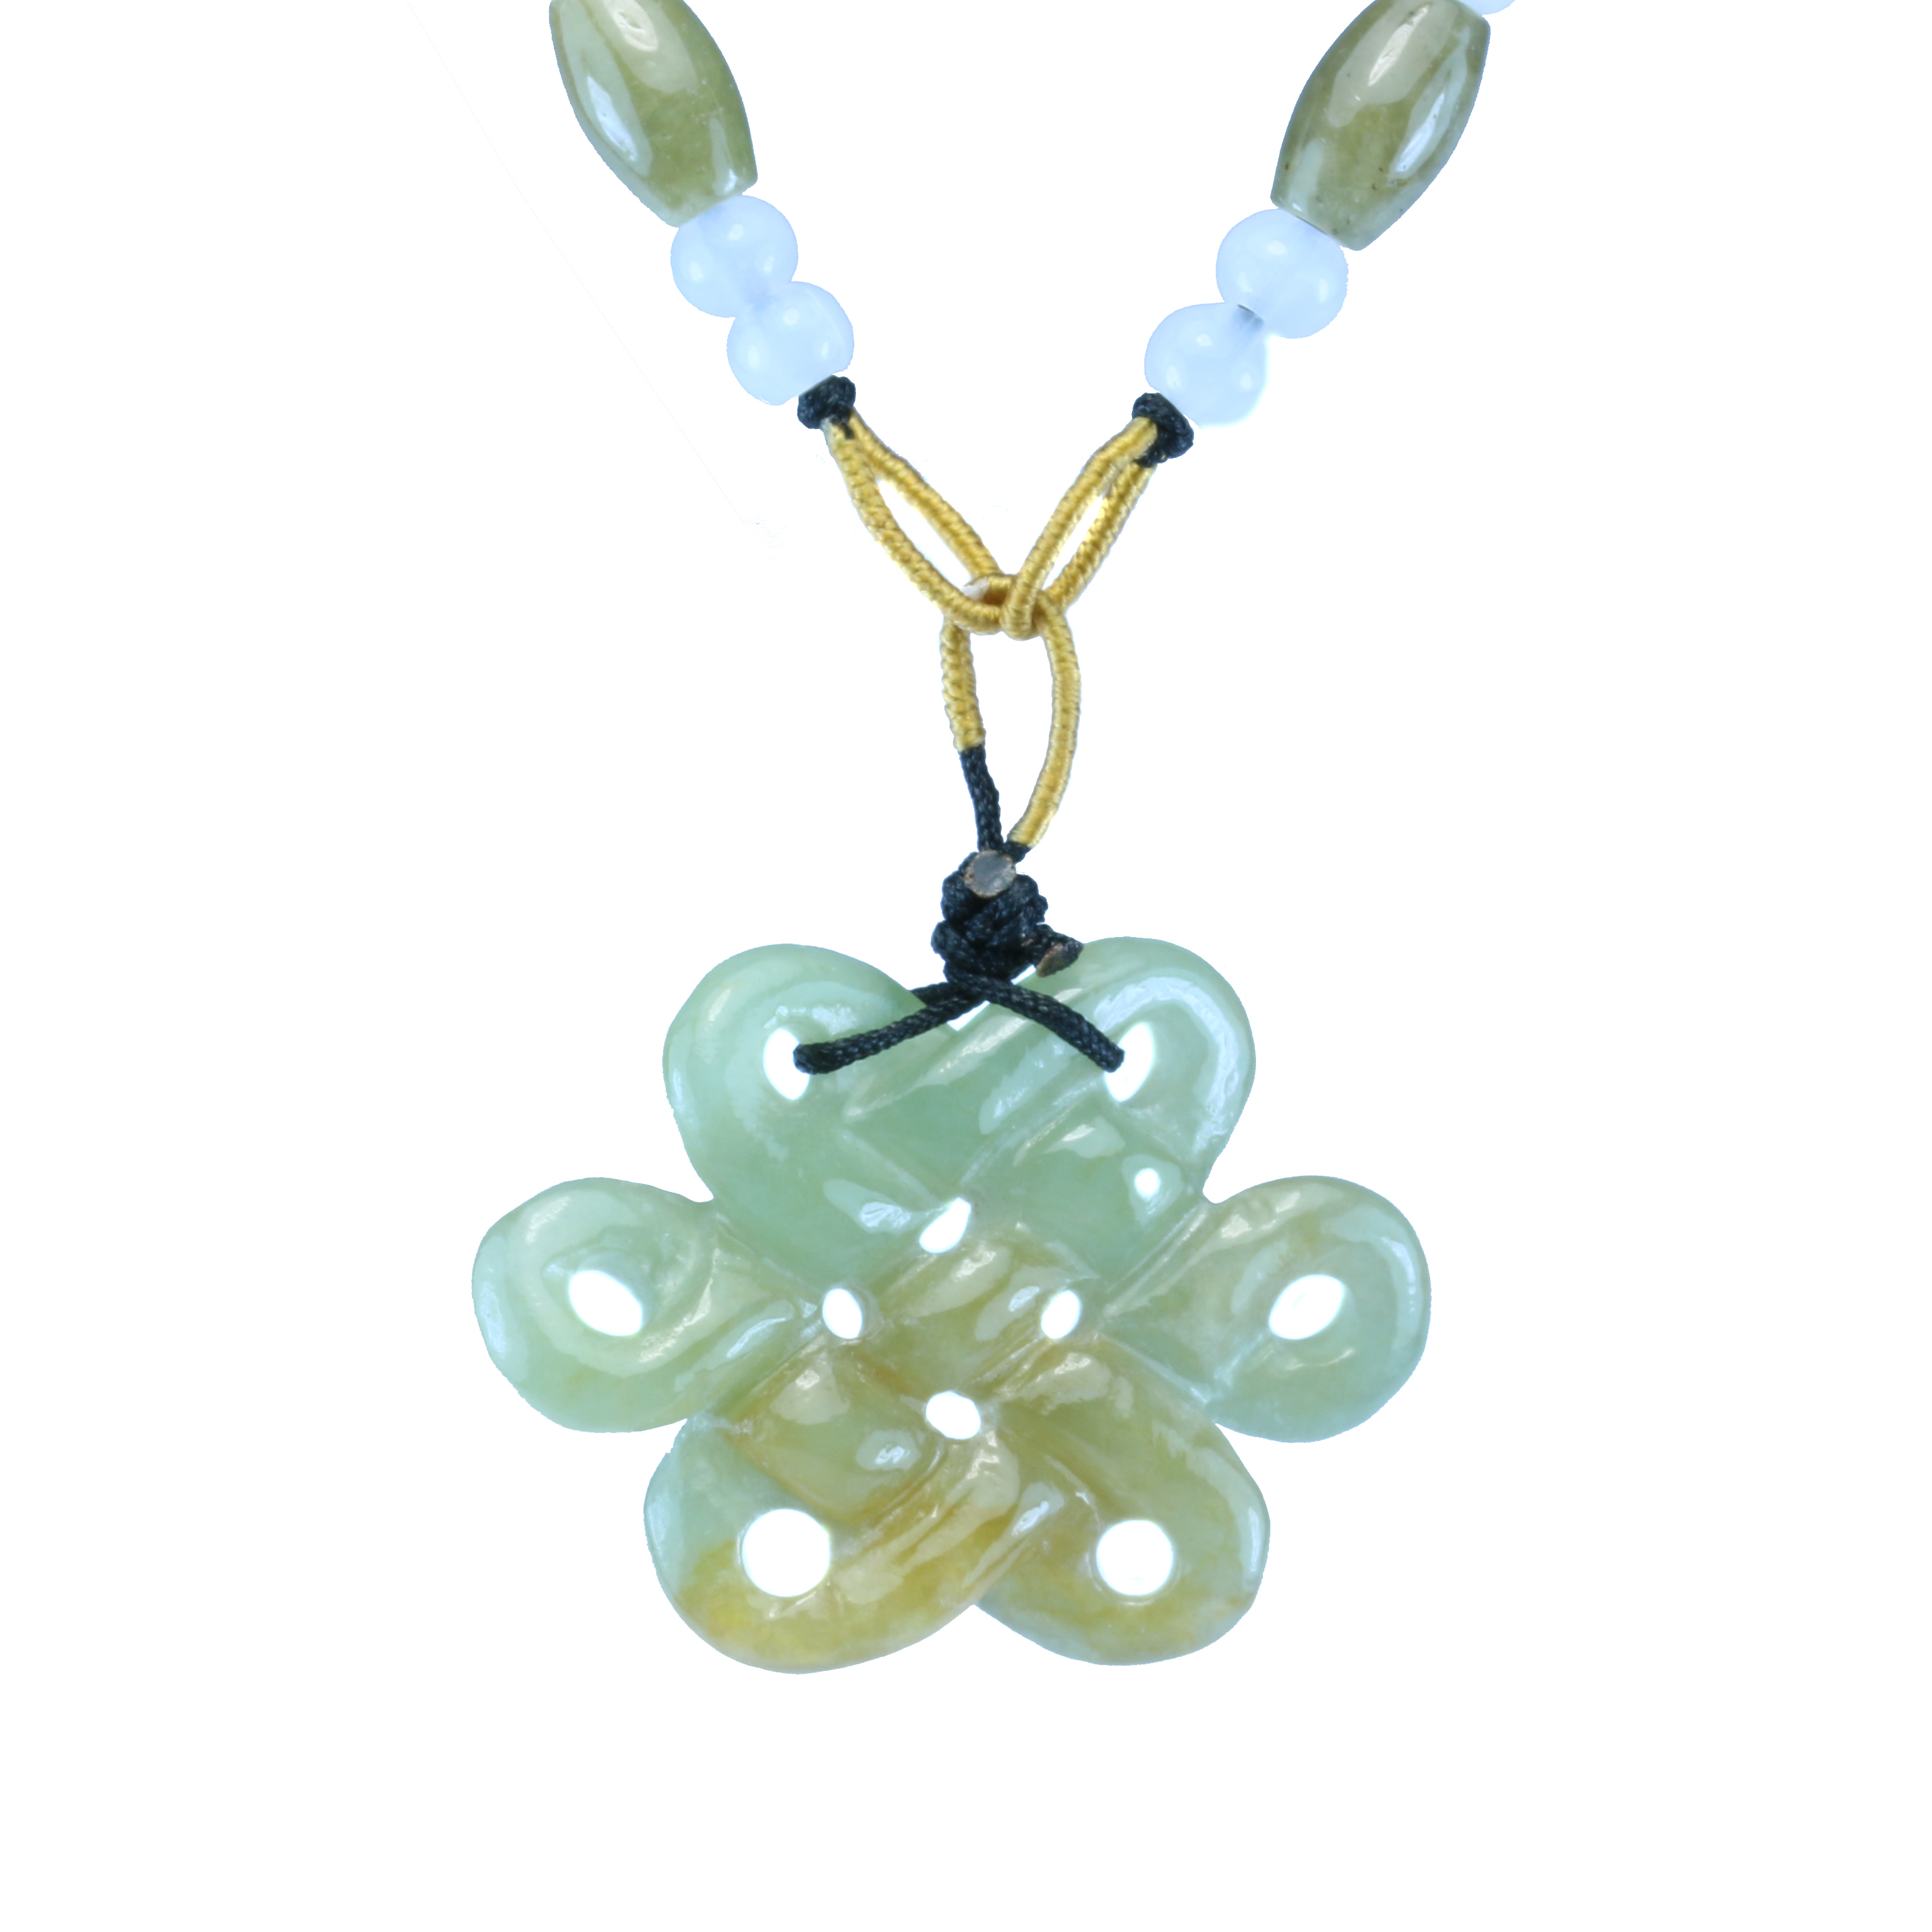 Jade mystic knot pendant with string 8treasures jade mystic knot pendant with string aloadofball Choice Image